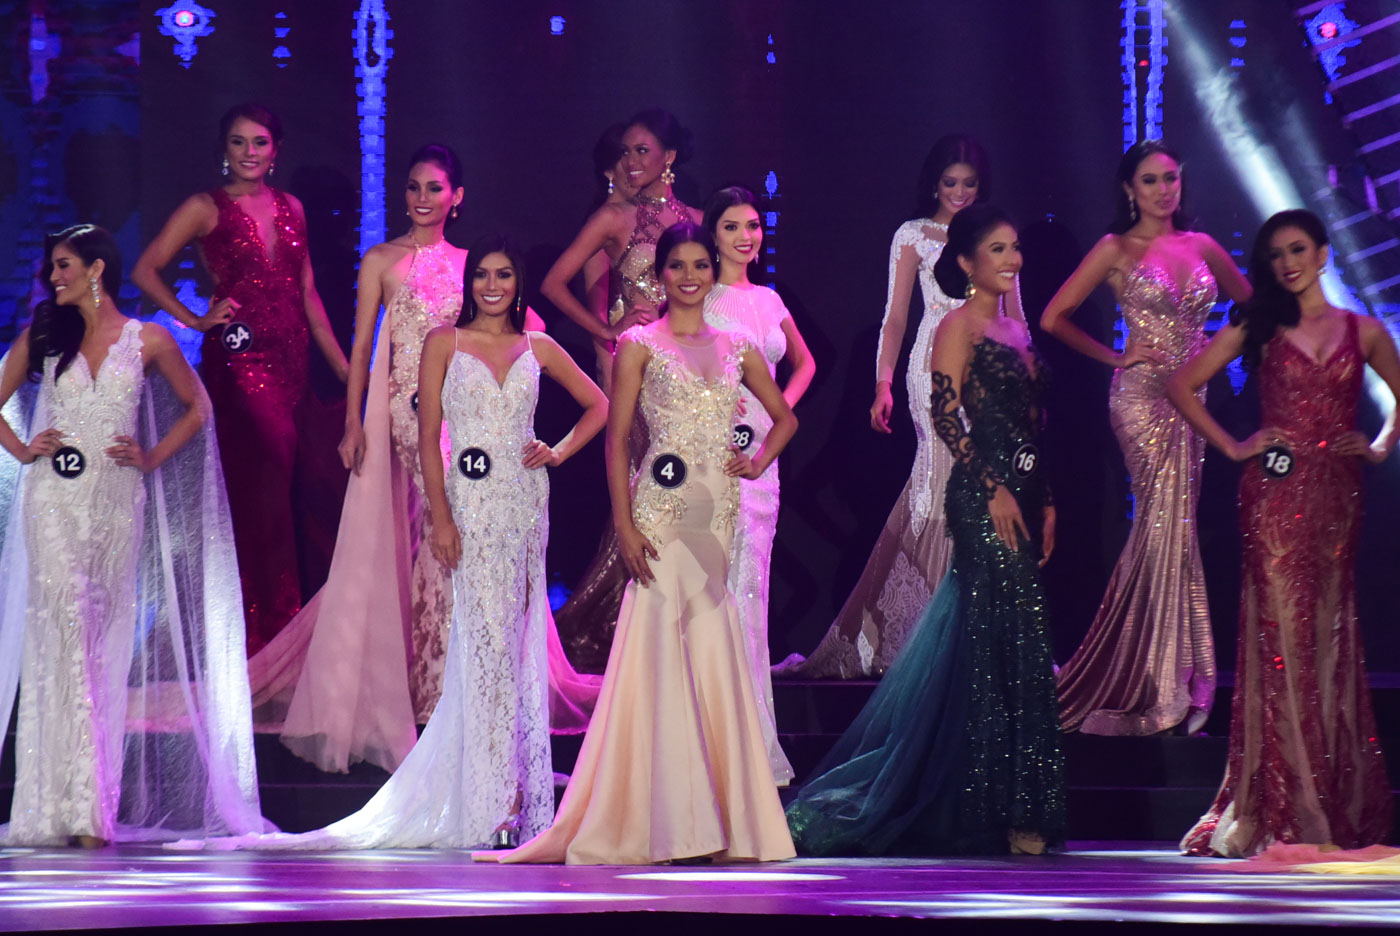 IN PHOTOS: Bb Pilipinas 2017 evening gown competition